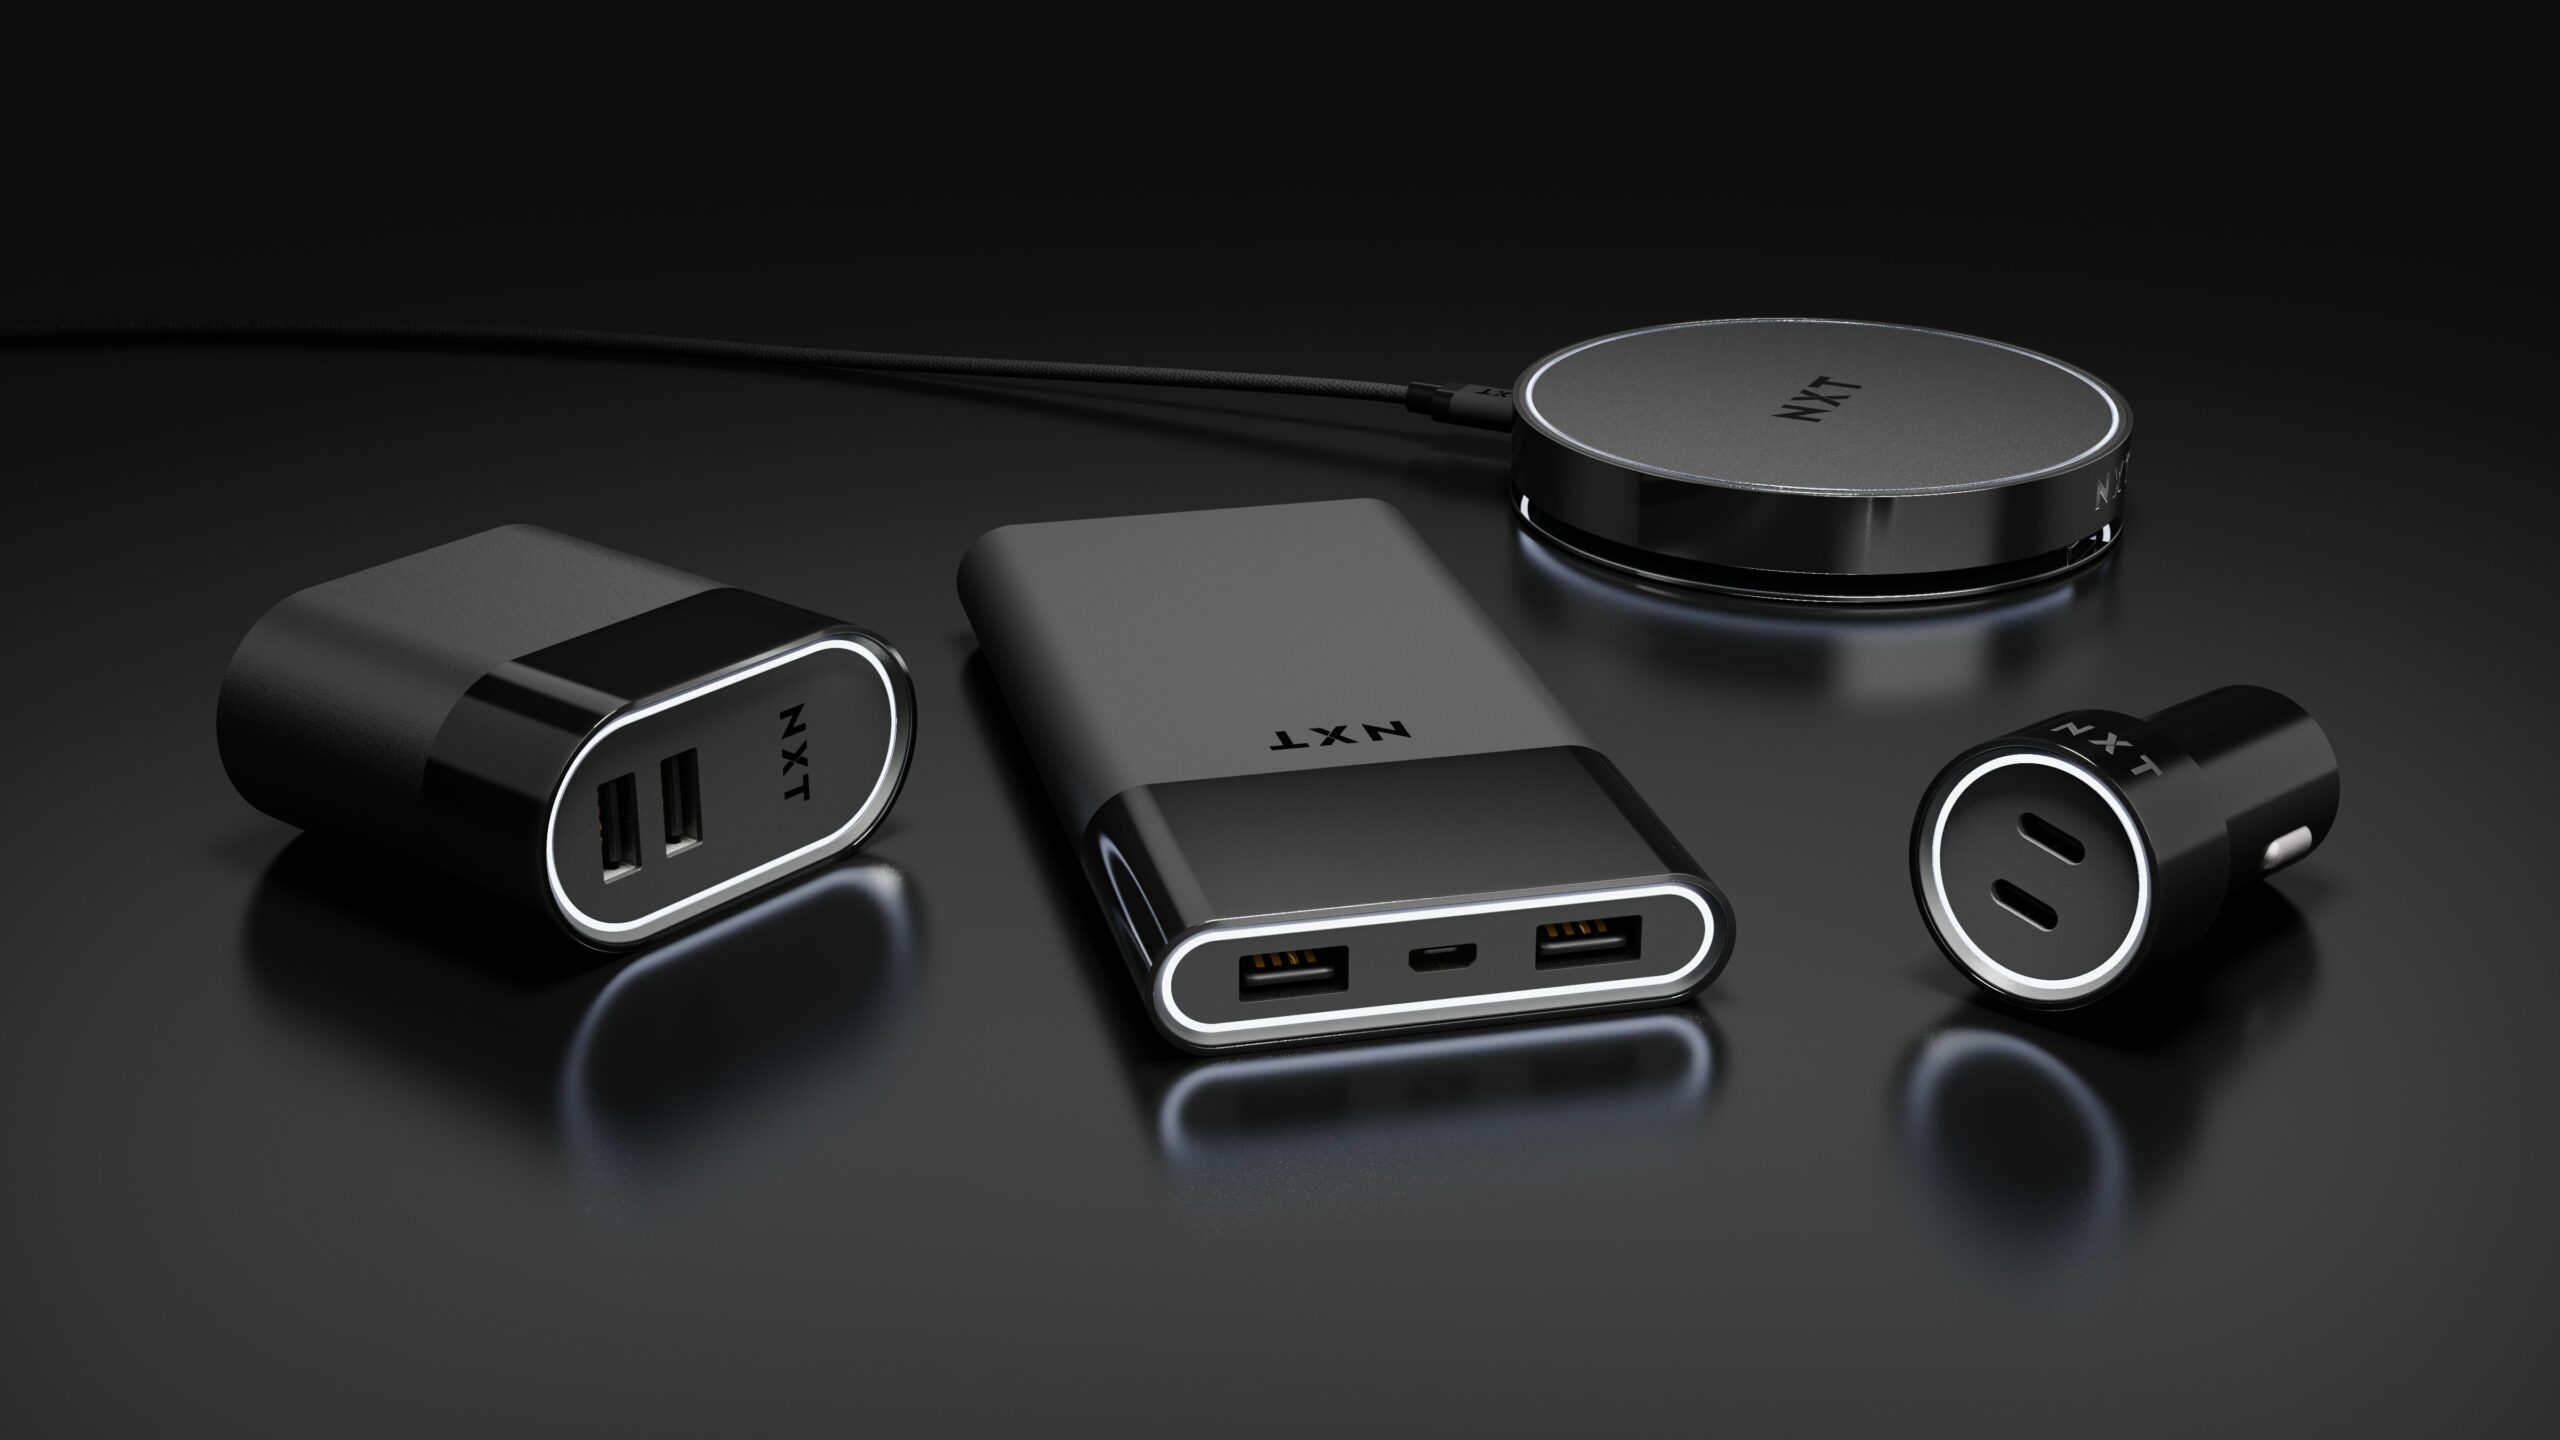 NXT Product Family Black Staples NXT Products on black Table CGI Render by Sprout Studios